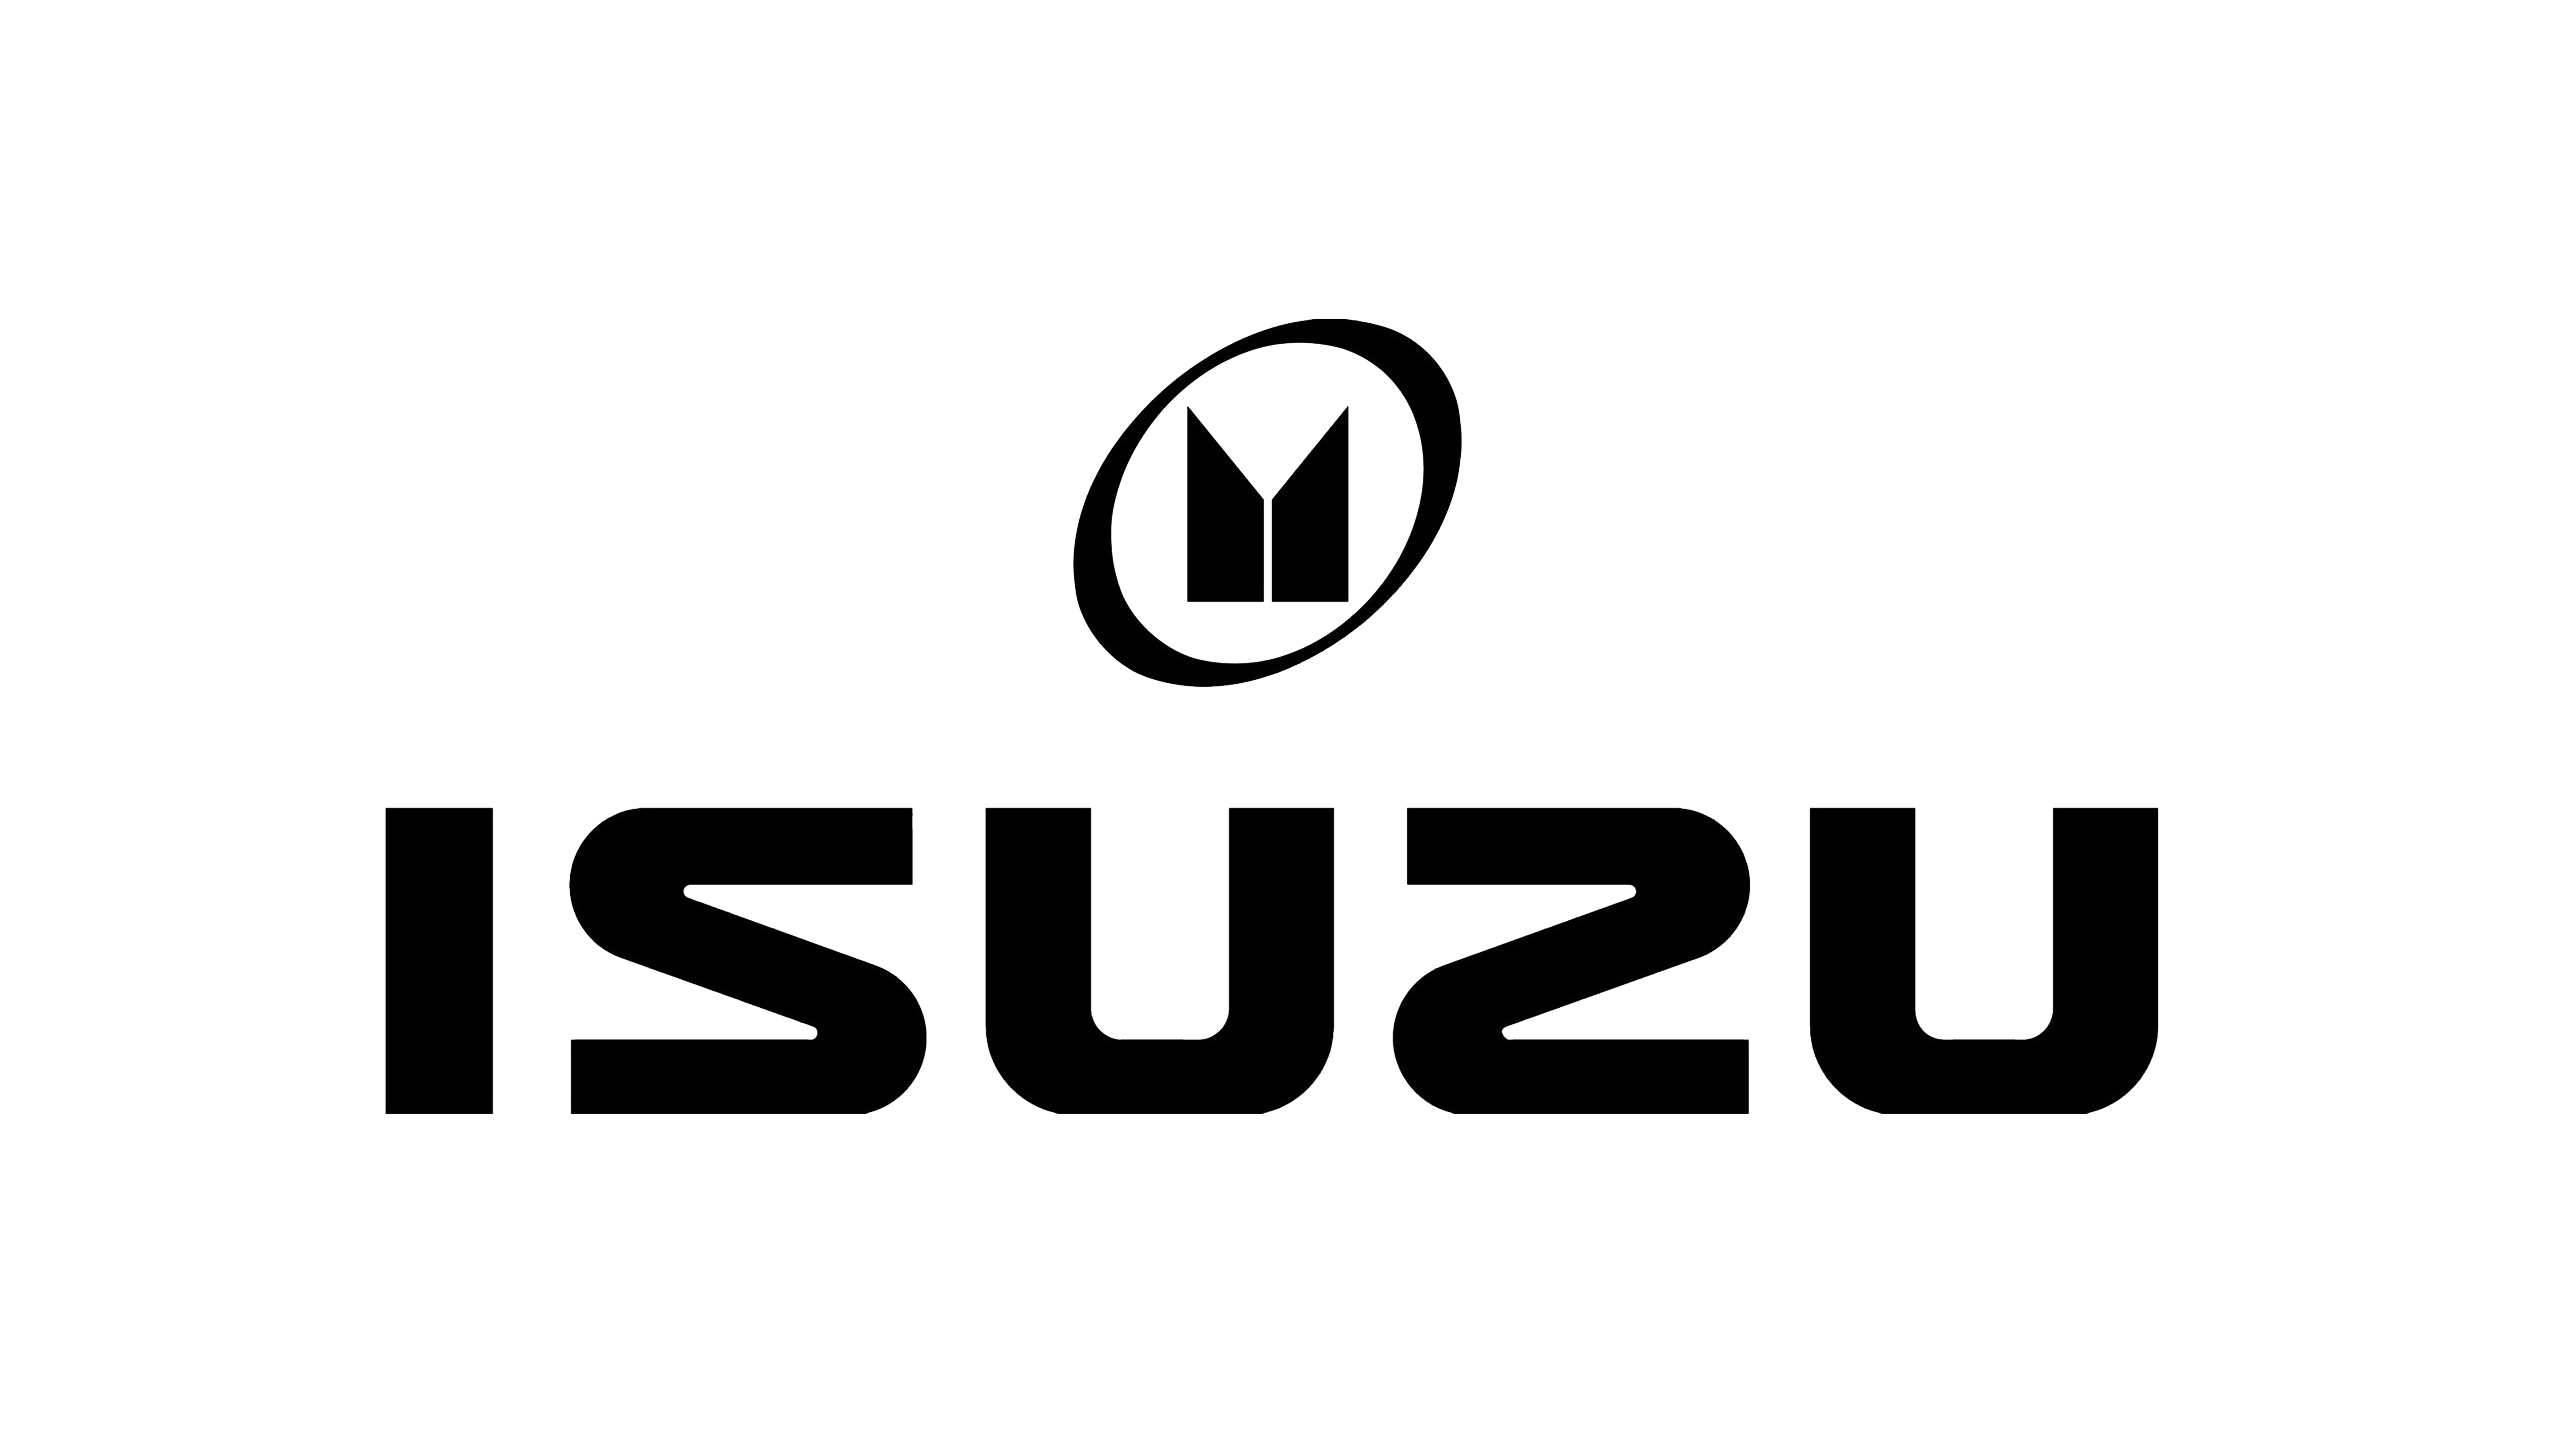 o world with Isuzu Logo on High Resolution Image further Dragonforce Power Within in addition Hand whisk clipart as well Super Mario Coloring Pages also Watch.